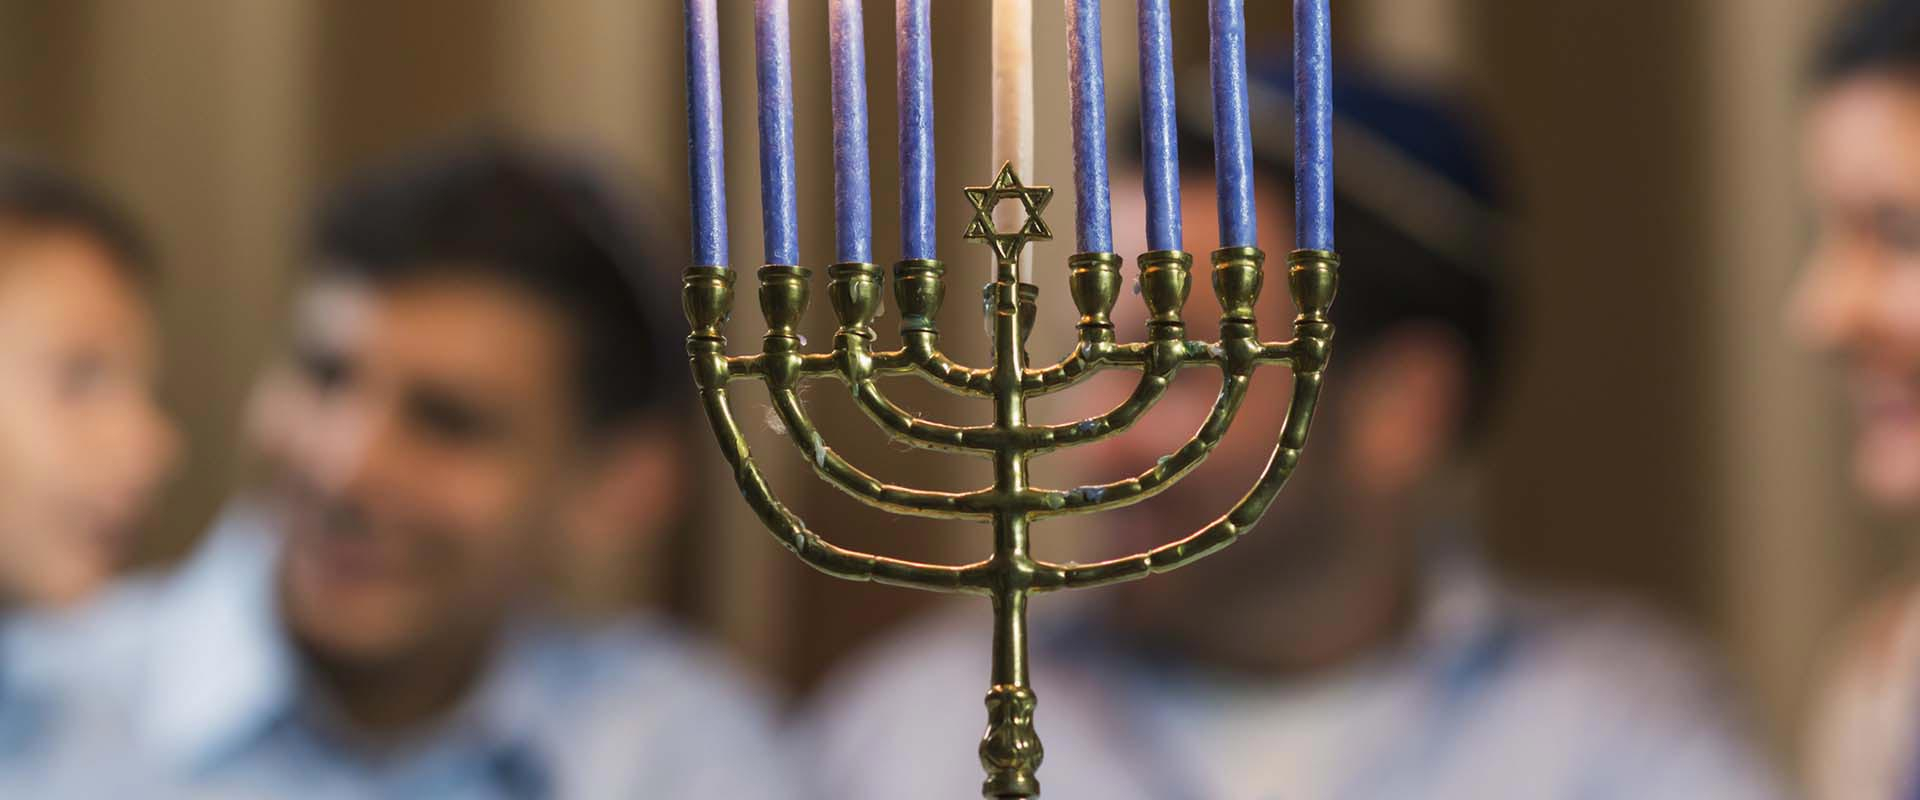 Hannukah 2020, 2021 And 2022 - Publicholidays.co.uk Throughout What Year Is It According To The Jewish Calendar